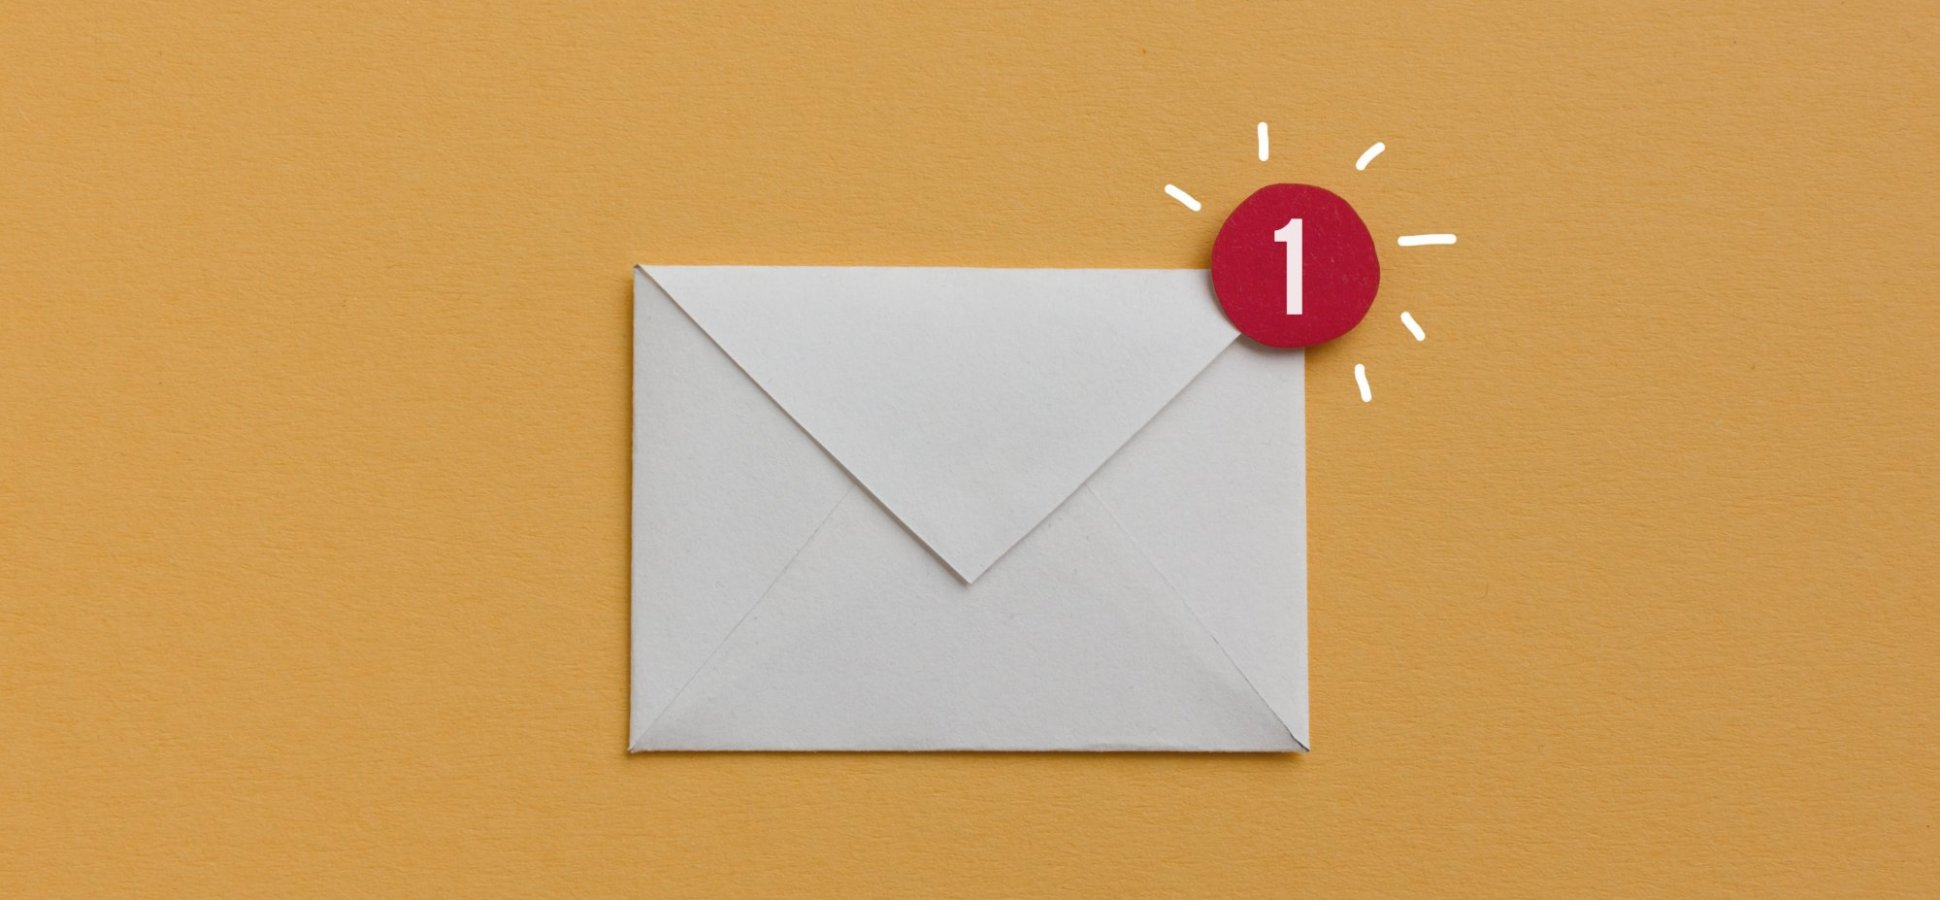 The 6 Most Passive-Aggressive Email Phrases You Use Without Thinking, According to a Recent Study